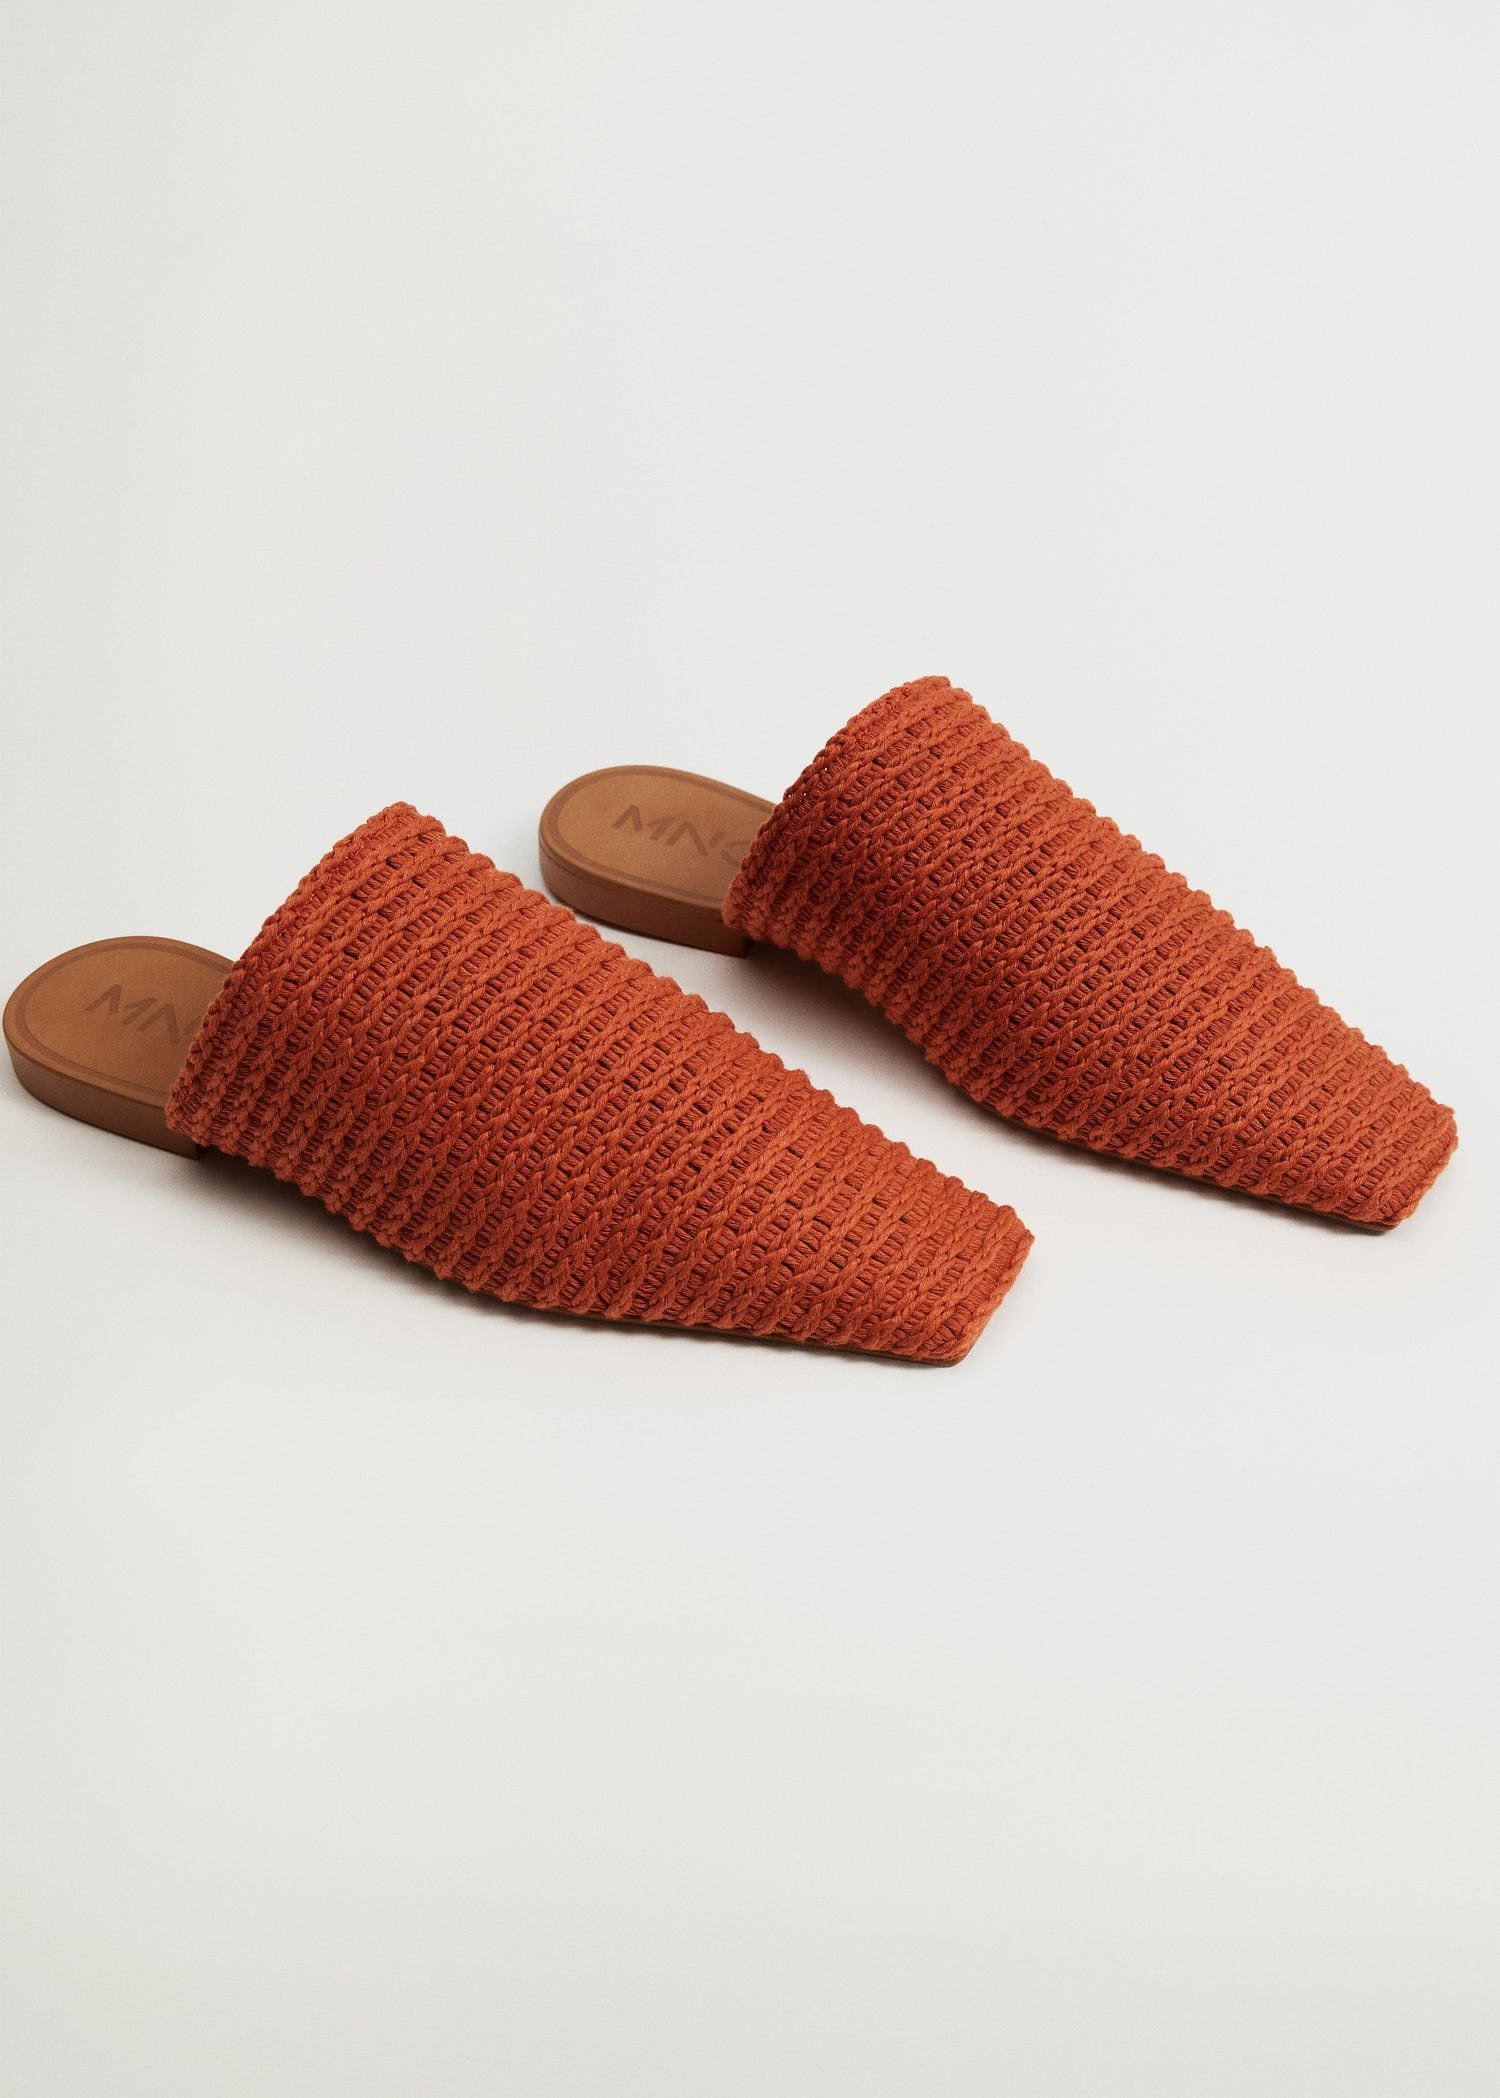 Recycled cotton braided babouche slippers 1